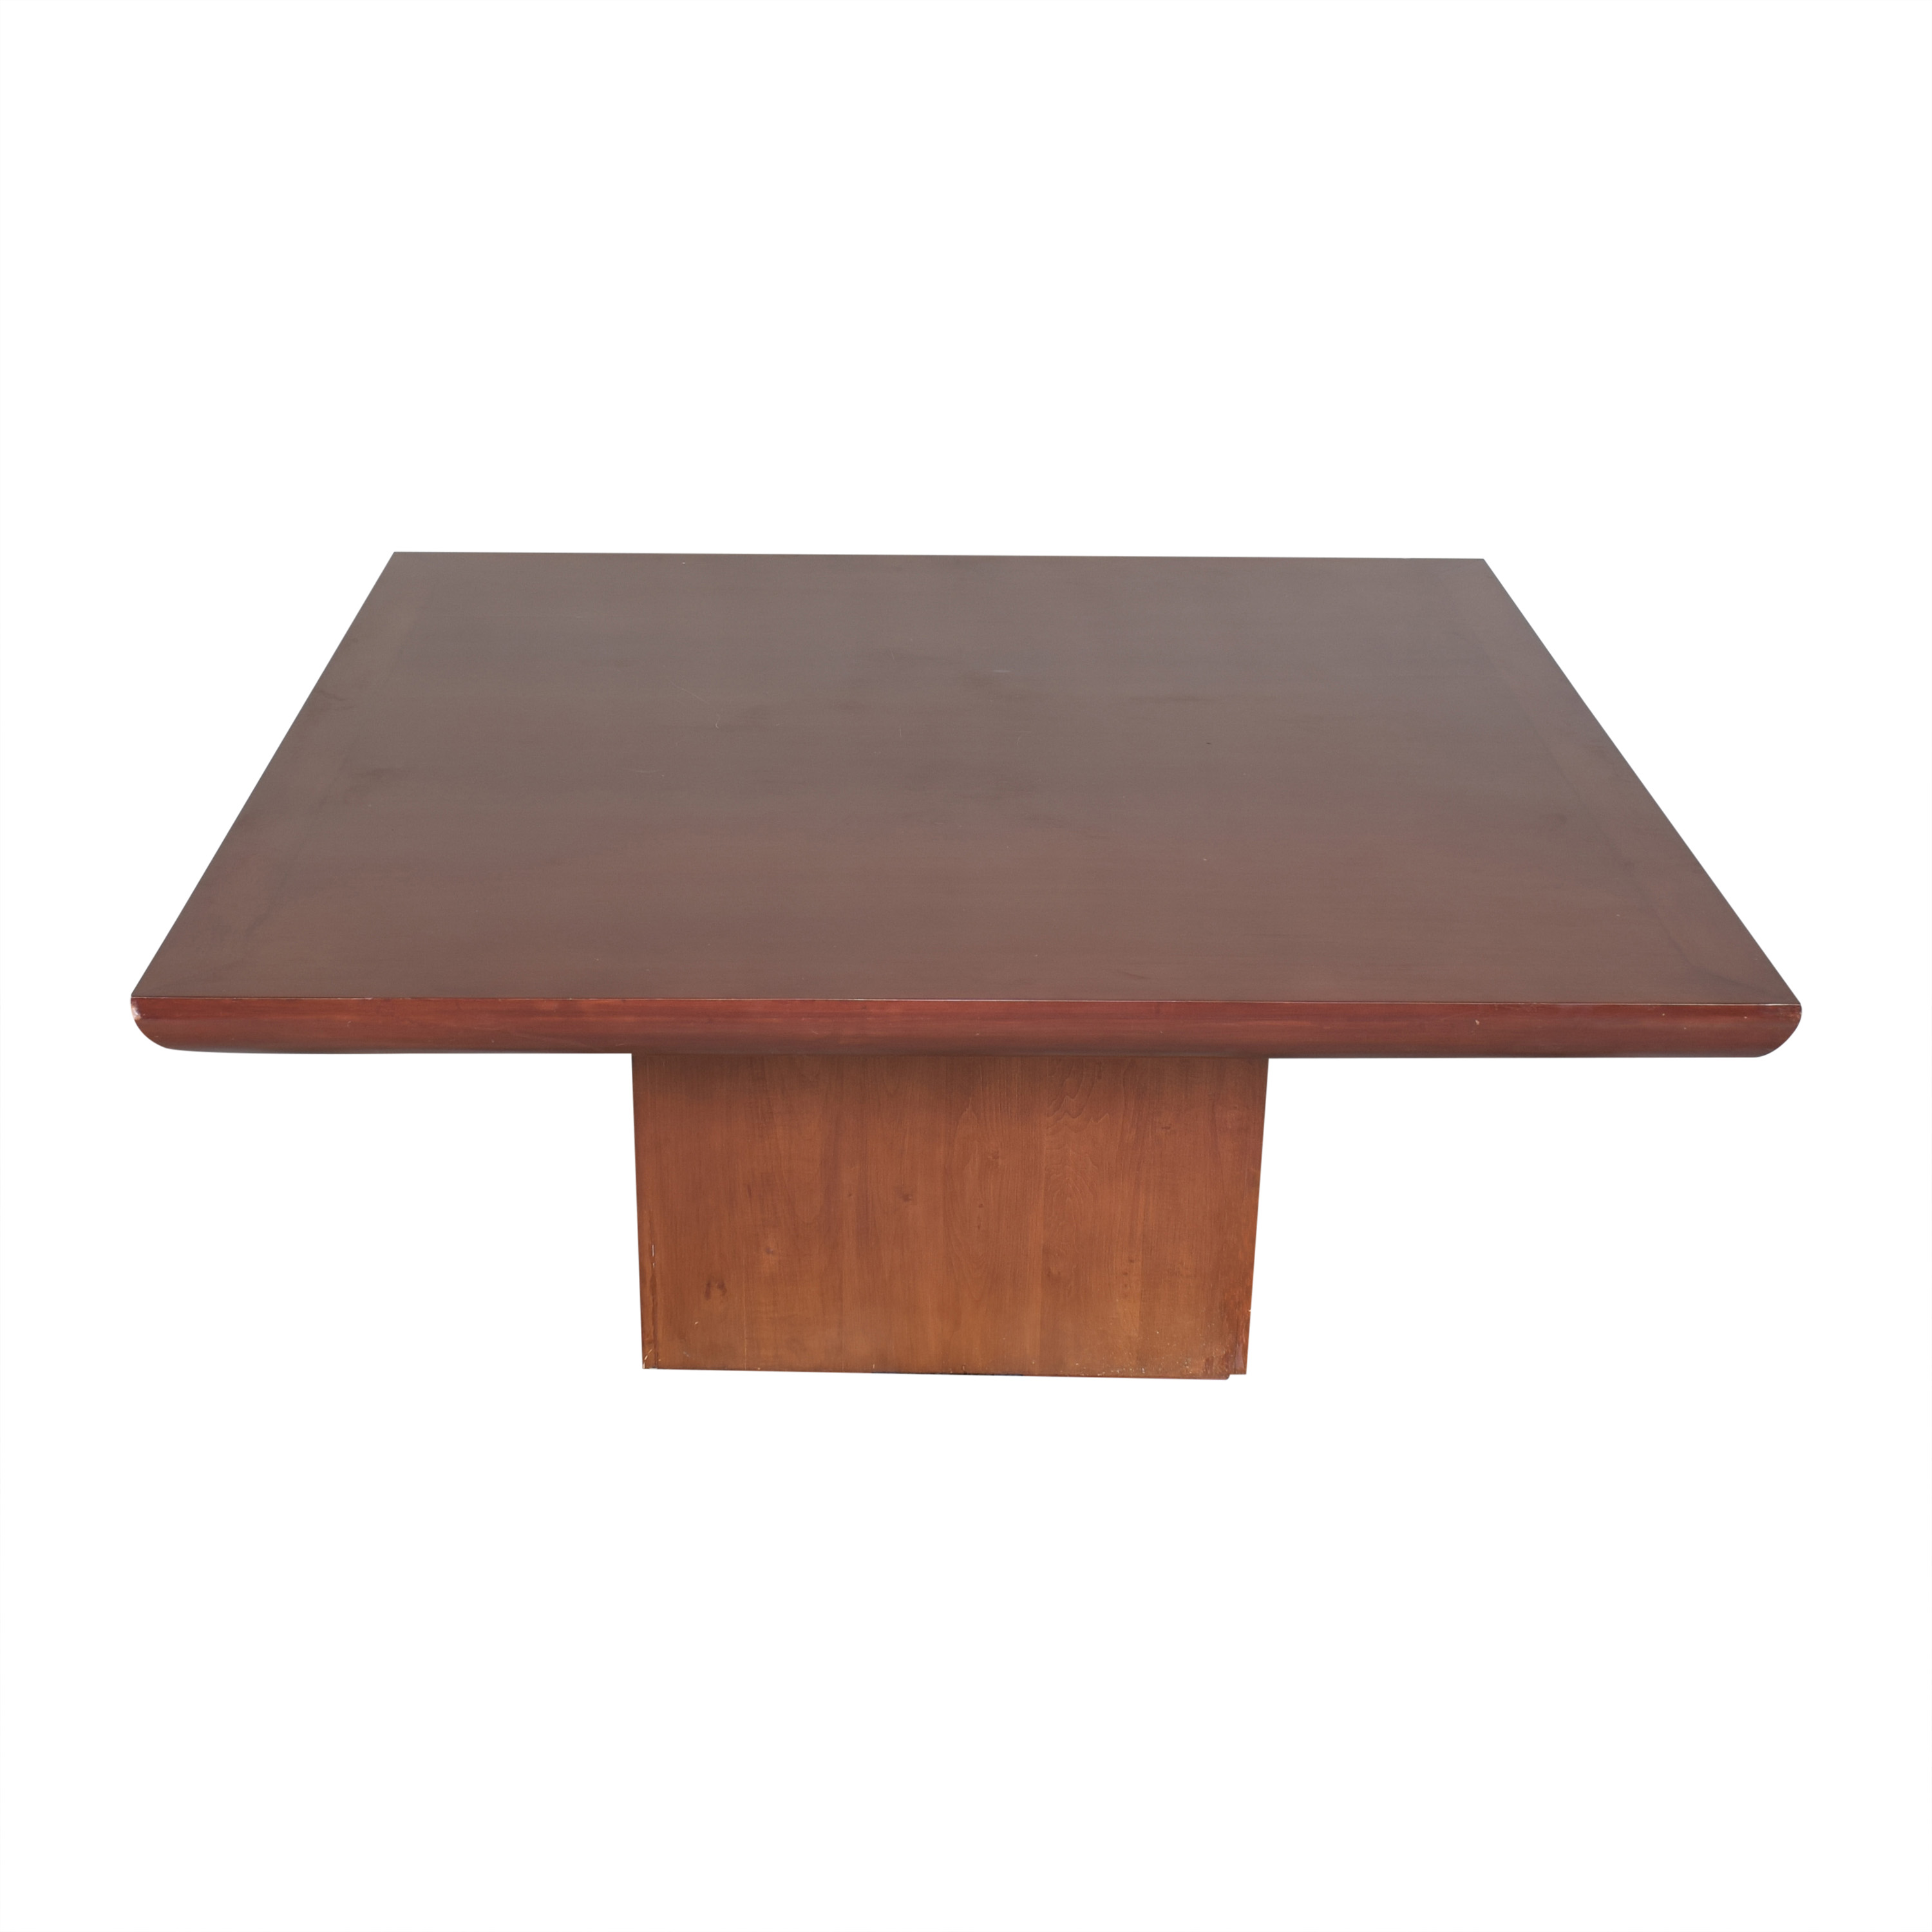 Terres Terres Square Dining Table used